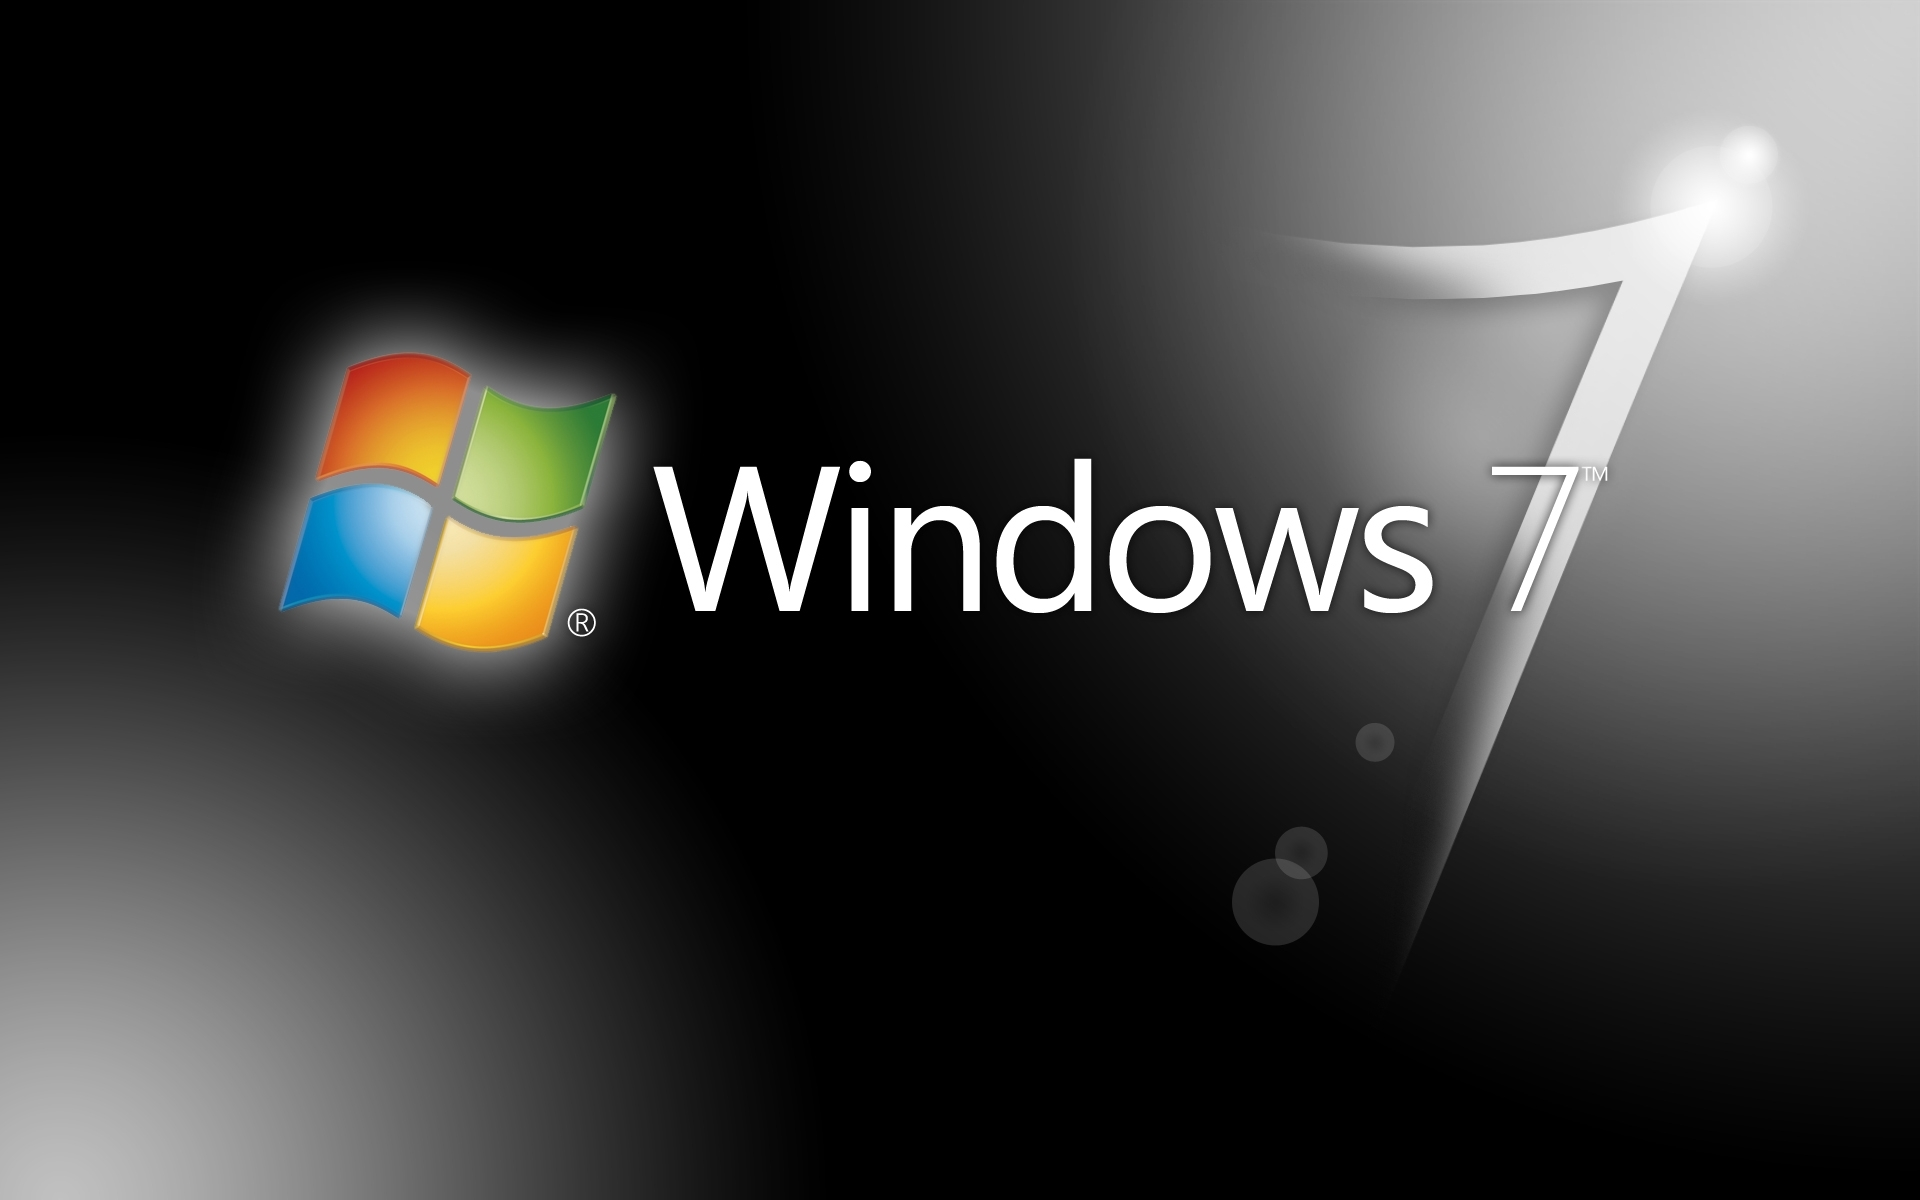 free hq windows 7 ultimate 48 wallpaper - free hq wallpapers